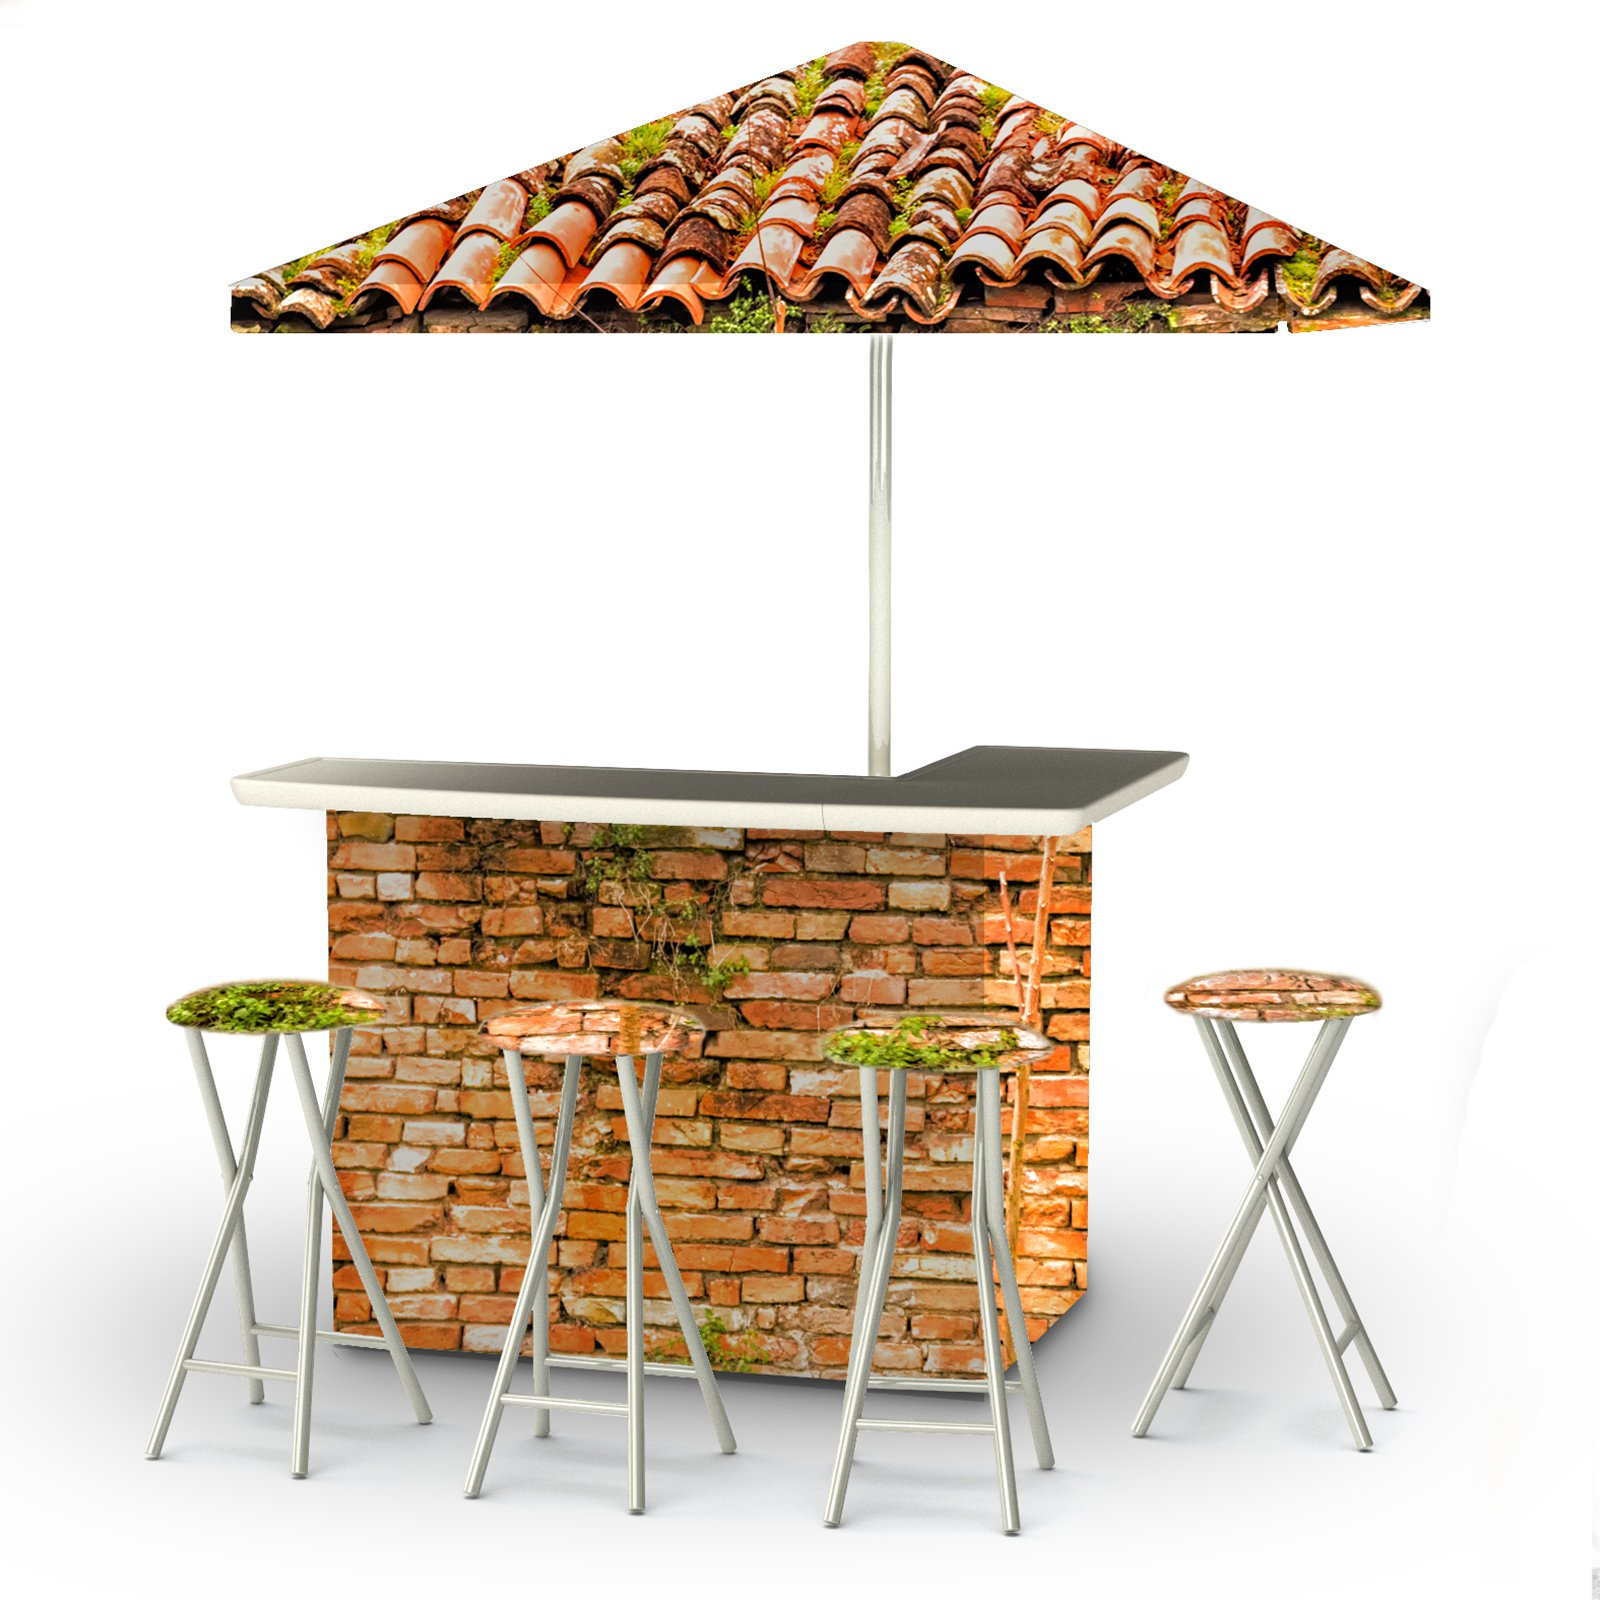 Best of Times 6 Piece Portable Deluxe Outdoor Bar Set